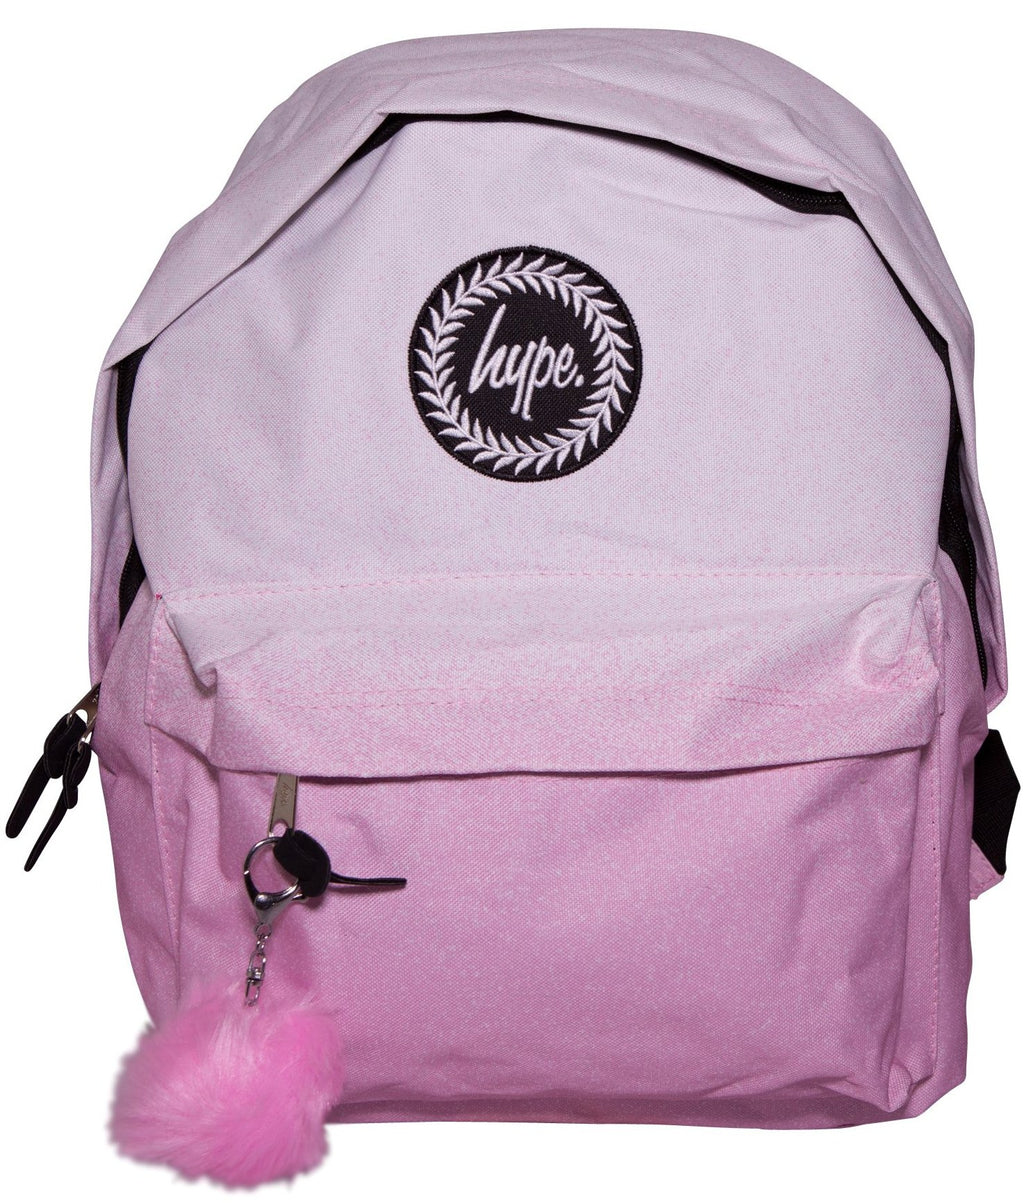 HYPE SPECKLE FADE POM BACKPACK RUCKSACK BAG - WHITE/PINK